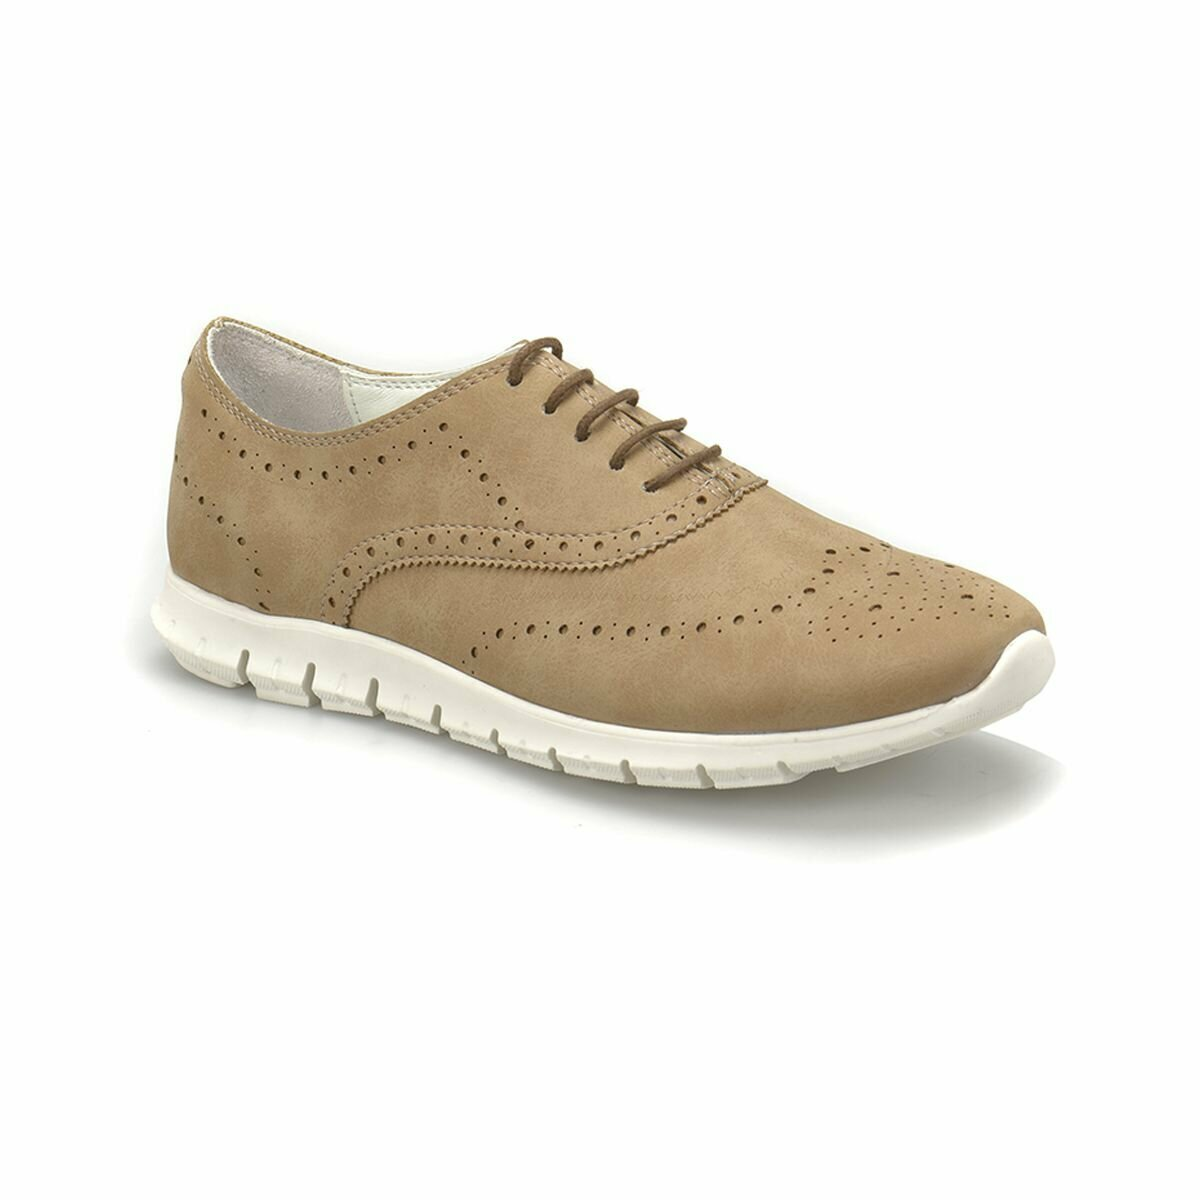 FLO CS18048 Mink Women 'S Oxford Shoes BUTIGO